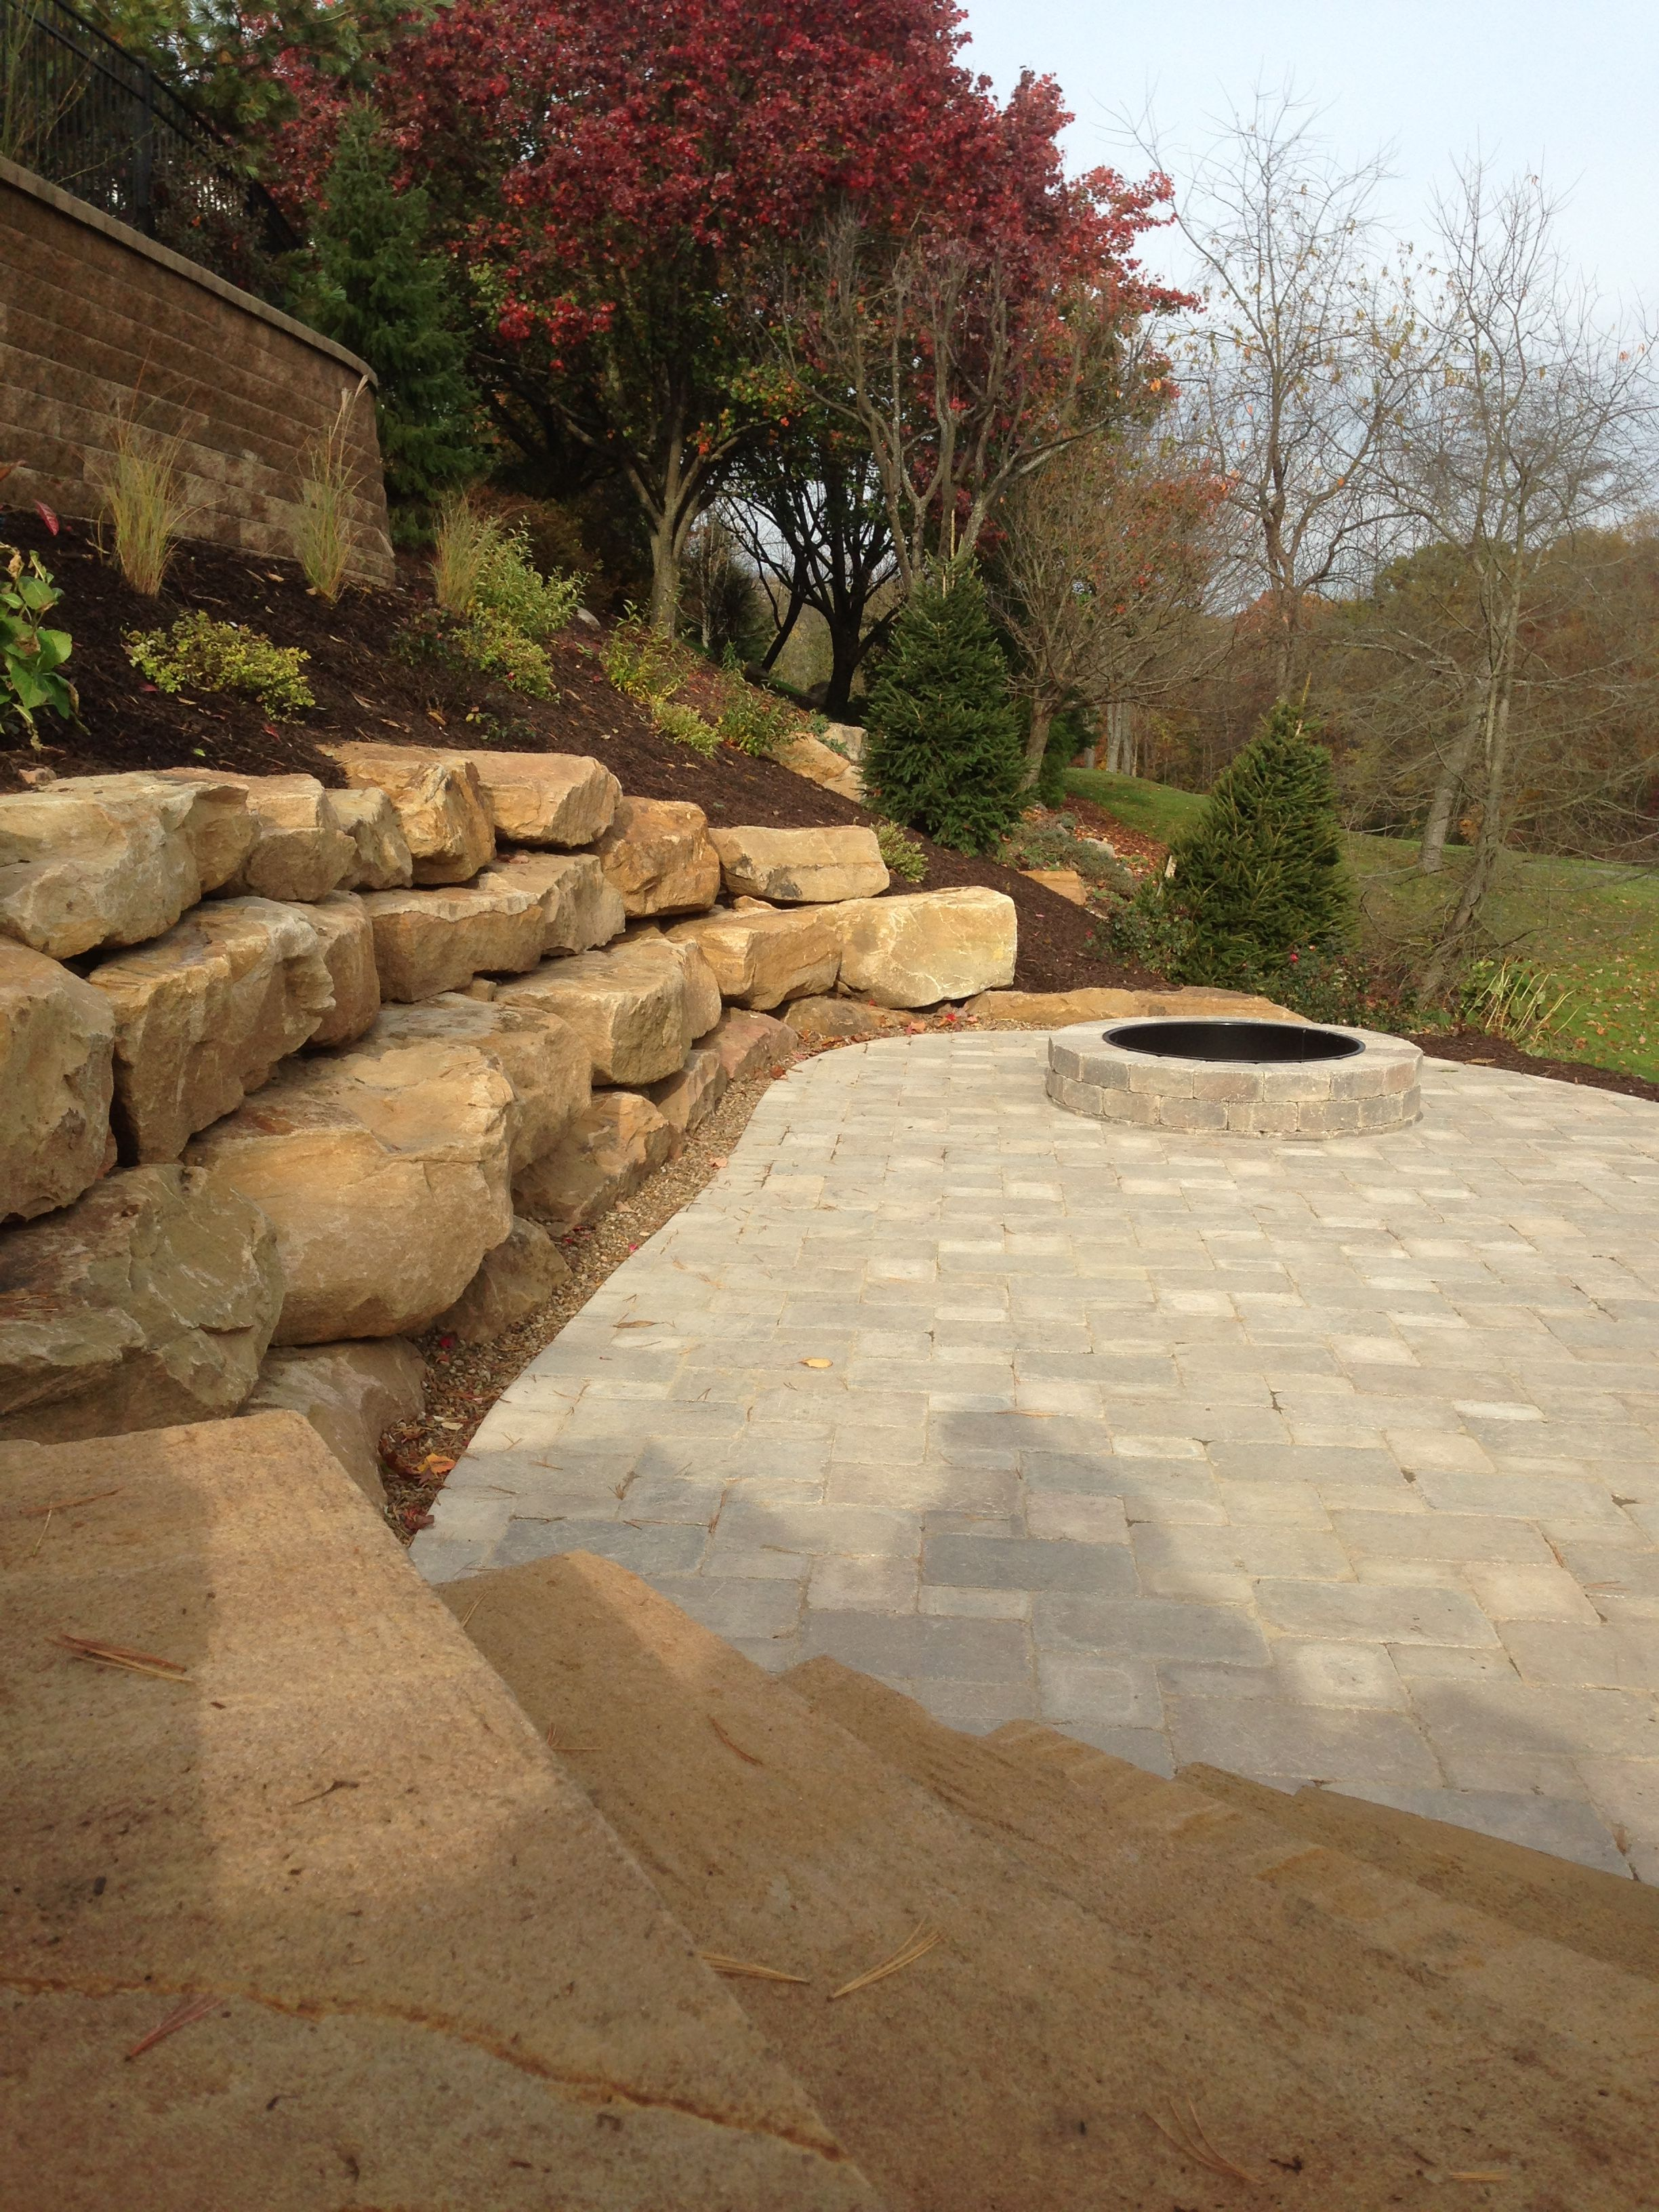 Three Tiered Boulder Retaining Wall Cut Into The Side Of A Hill.